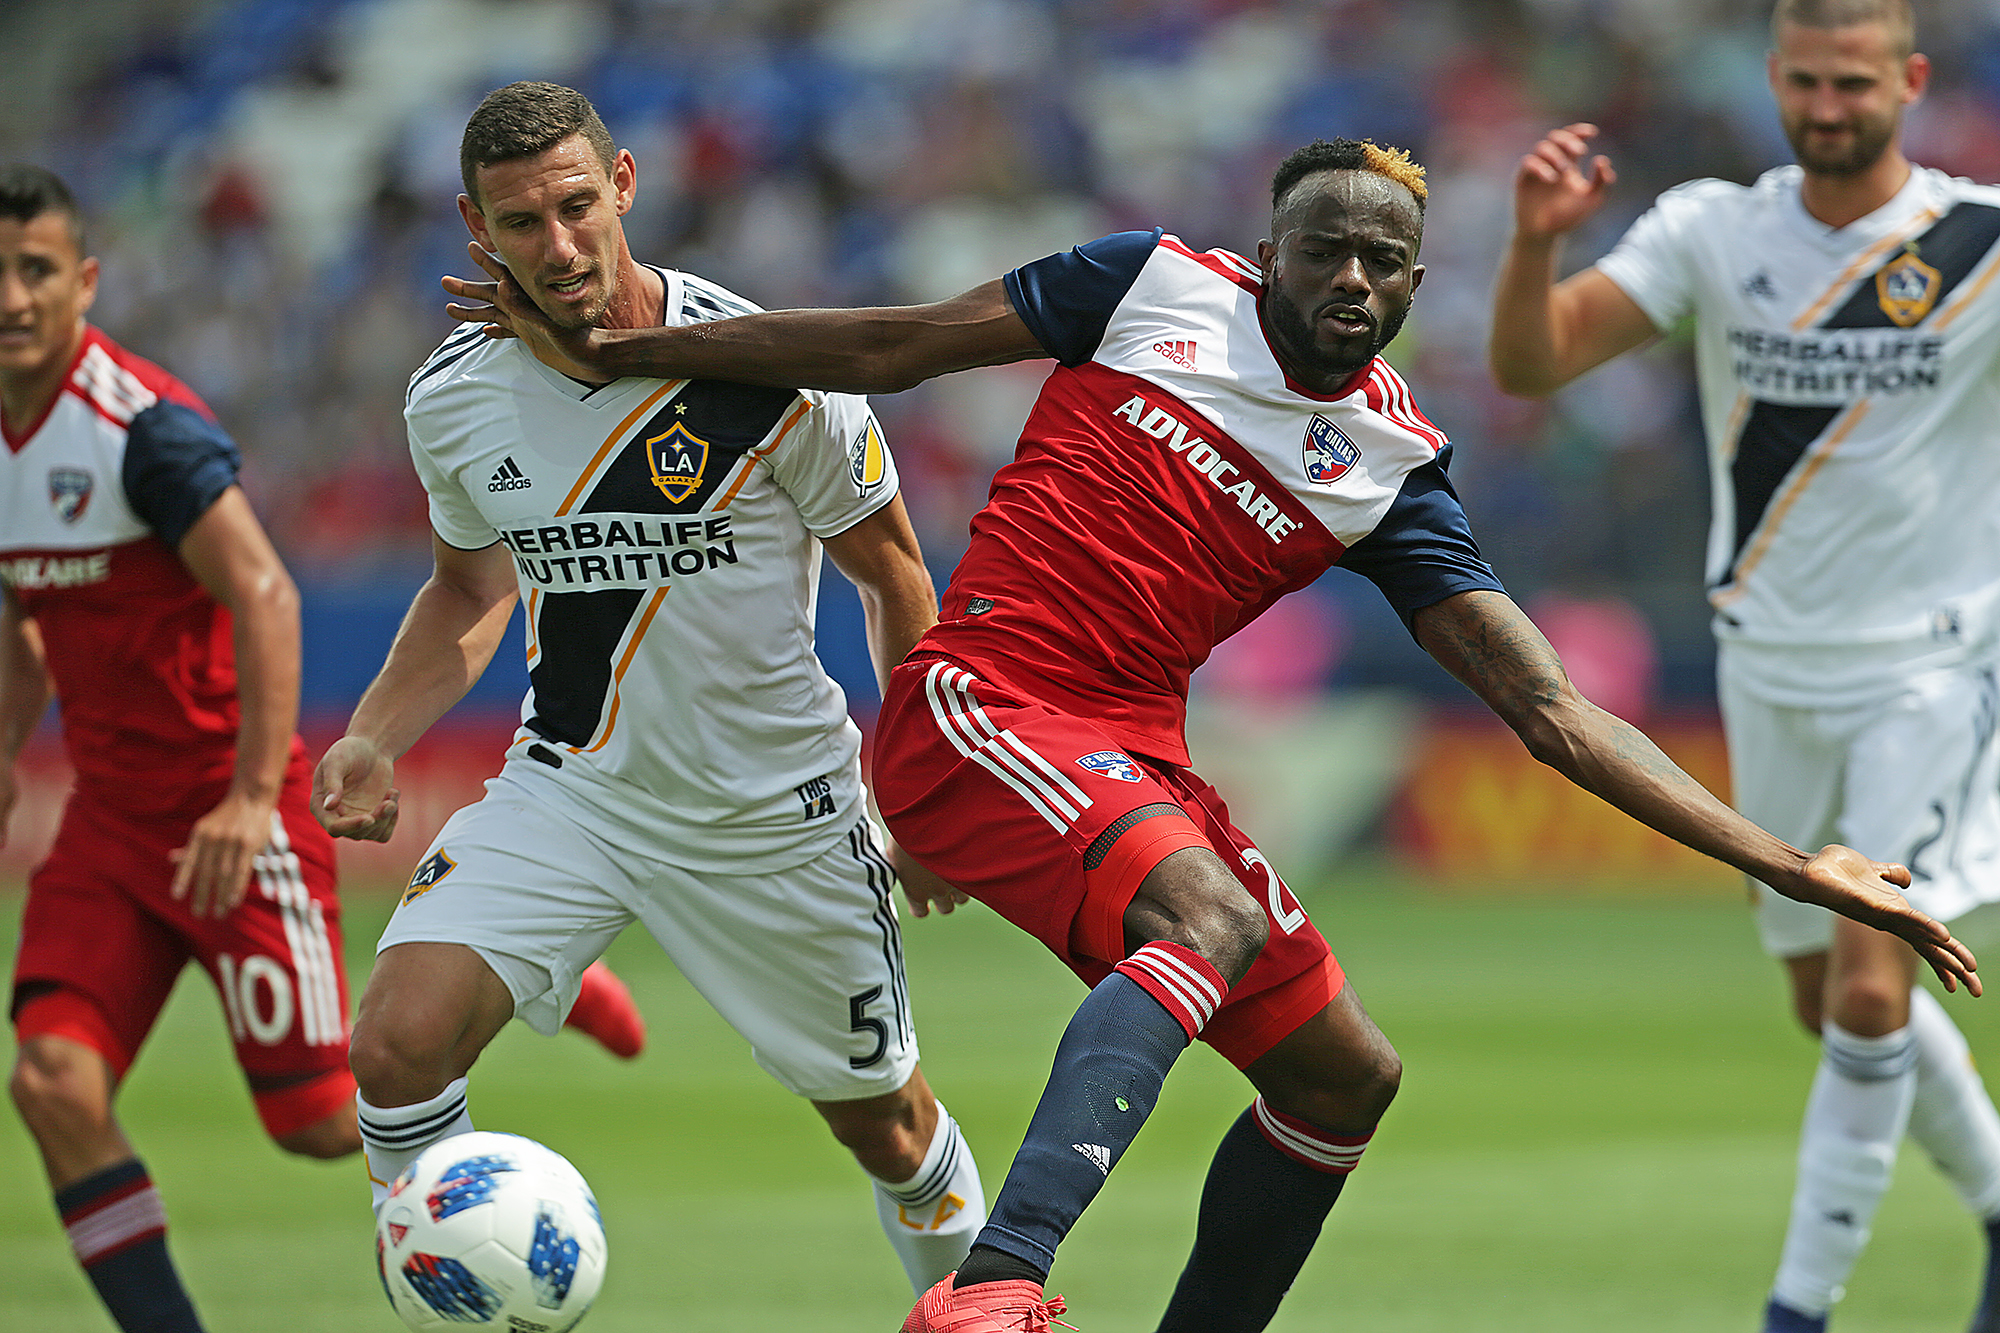 Mauro Diaz' three assists lifts FC Dallas over LA Galaxy